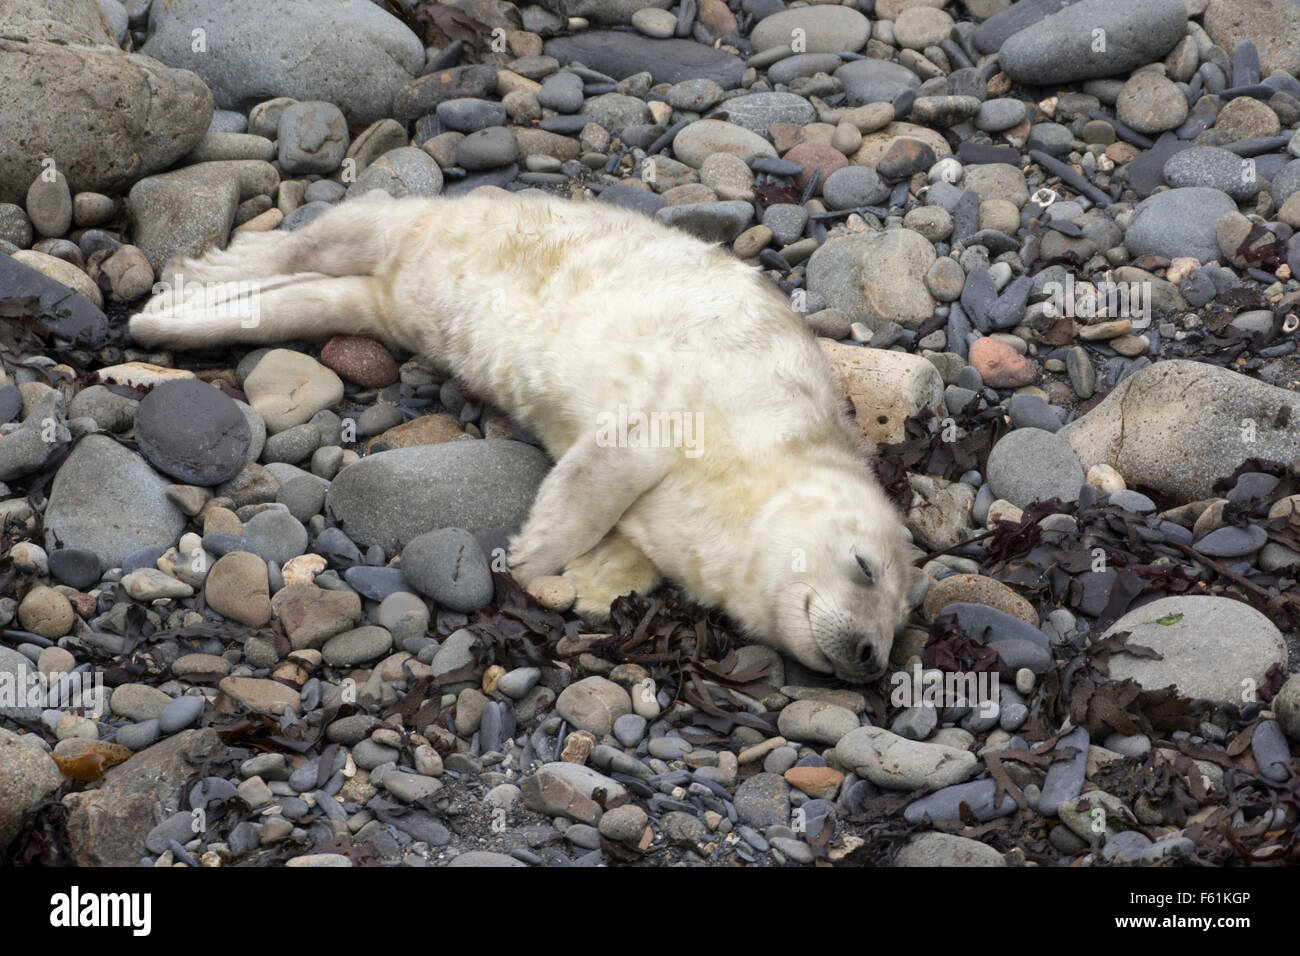 A young seal pup snoozing on a pebbly beach, Ramsey Island, Pembrokeshire, Wales, UK - Stock Image